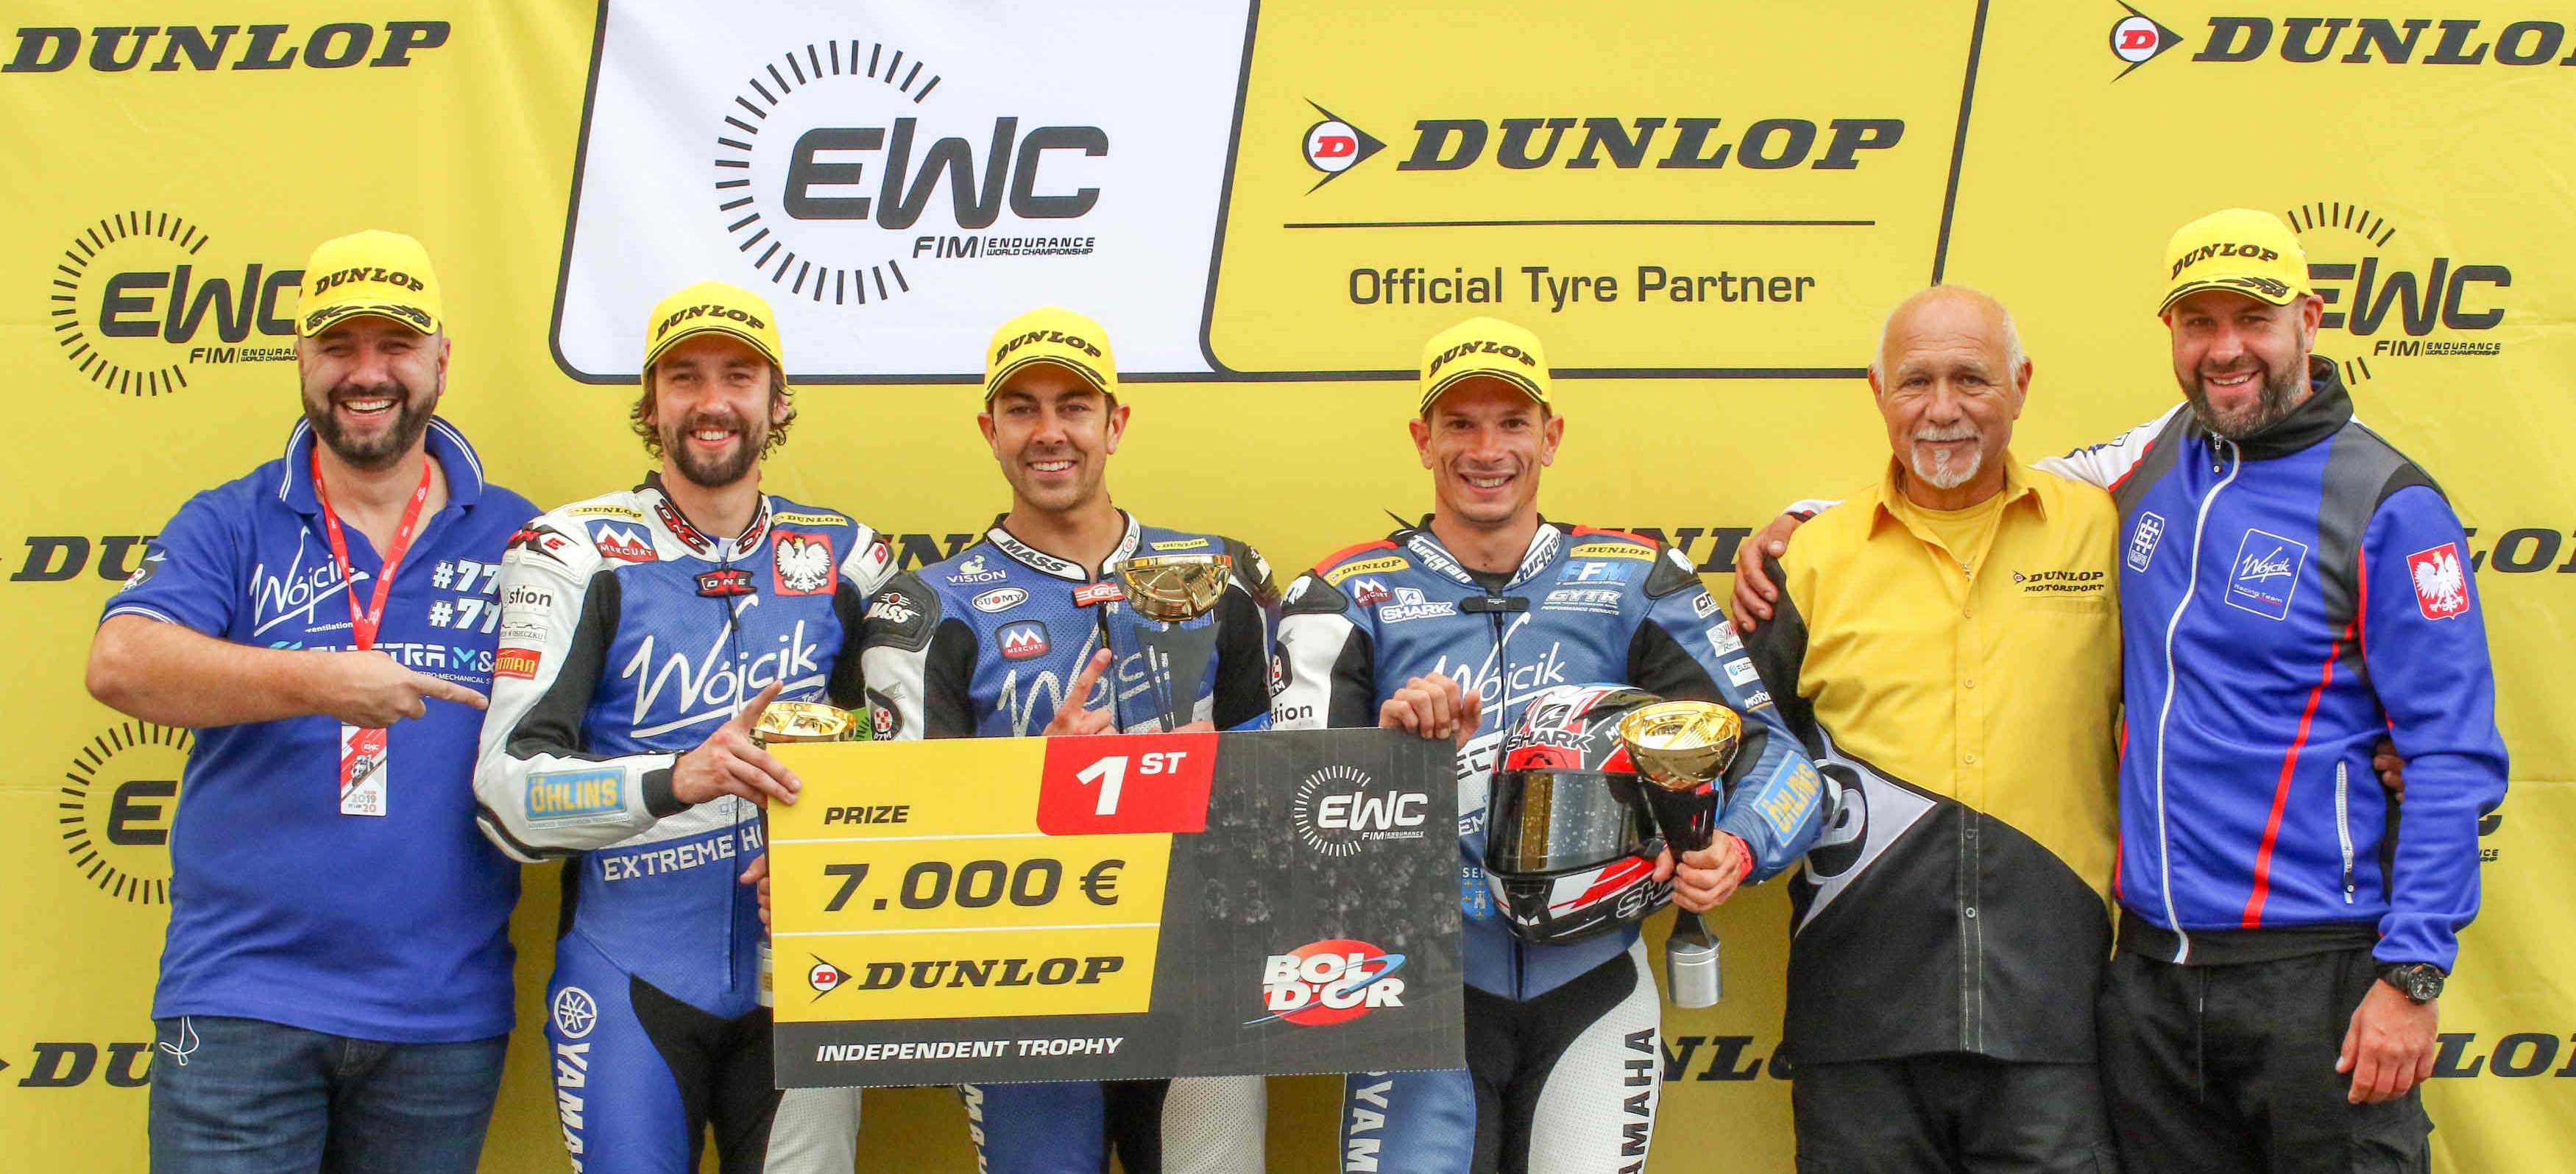 Wójcik Racing Team win EWC Dunlop Independent Trophy at the Bol d'Or